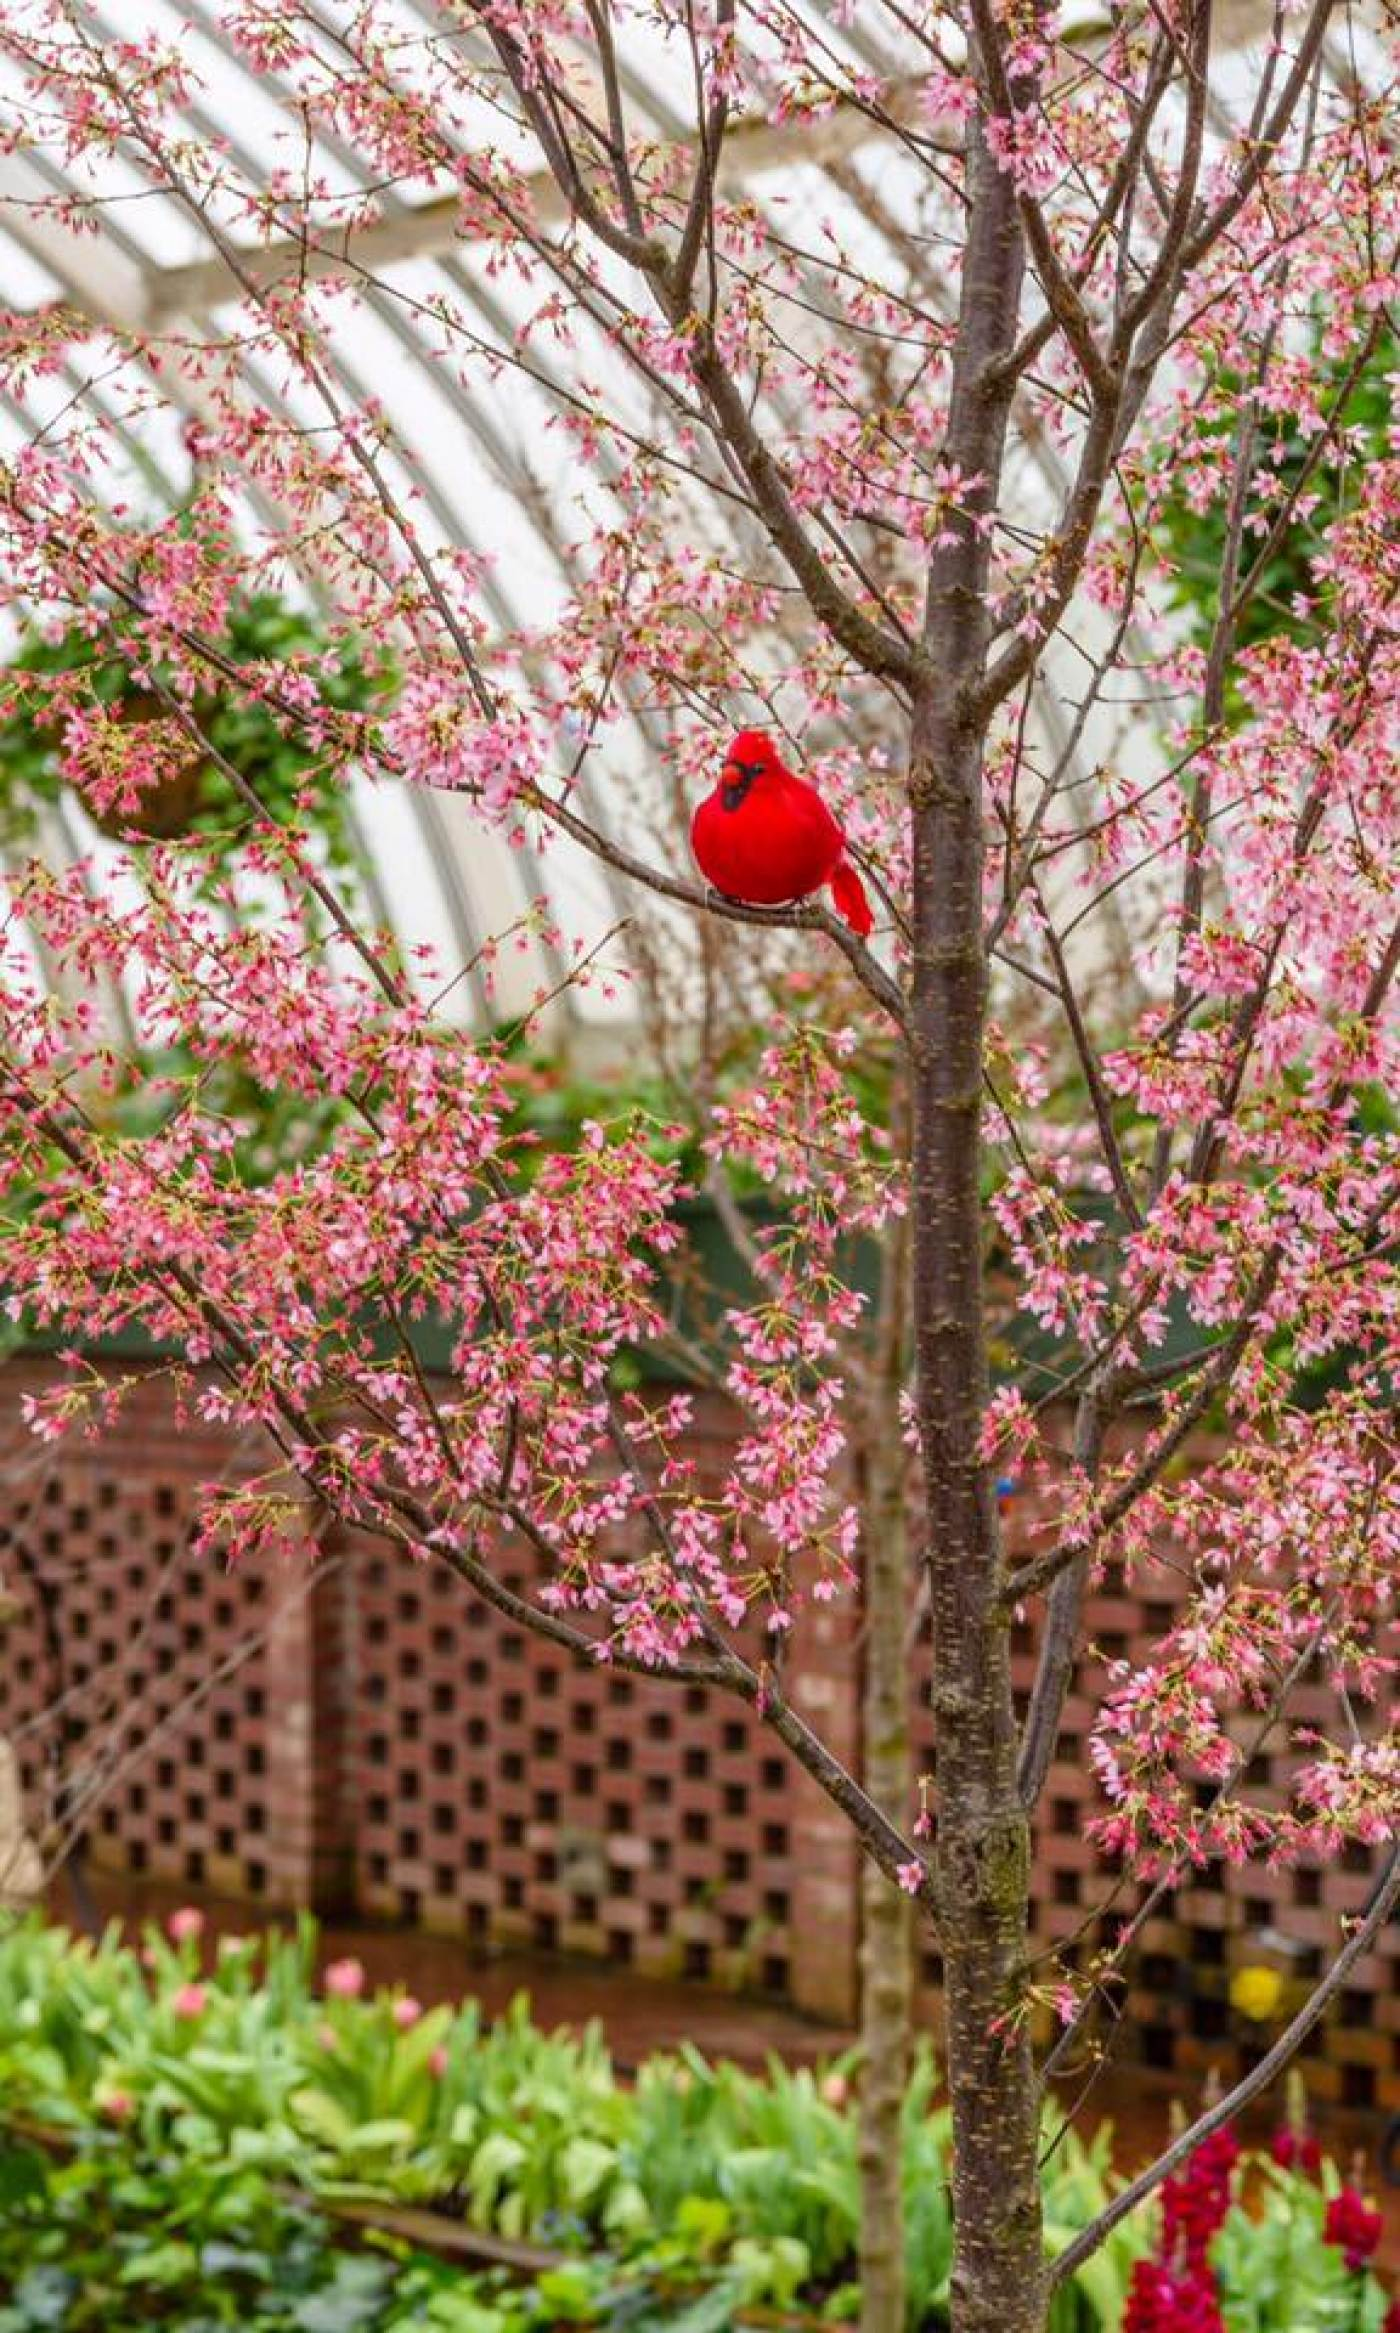 A cardinal ornament rests in a flowering cherry tree in Phipps' Sunken Garden during Spring Flower Show.